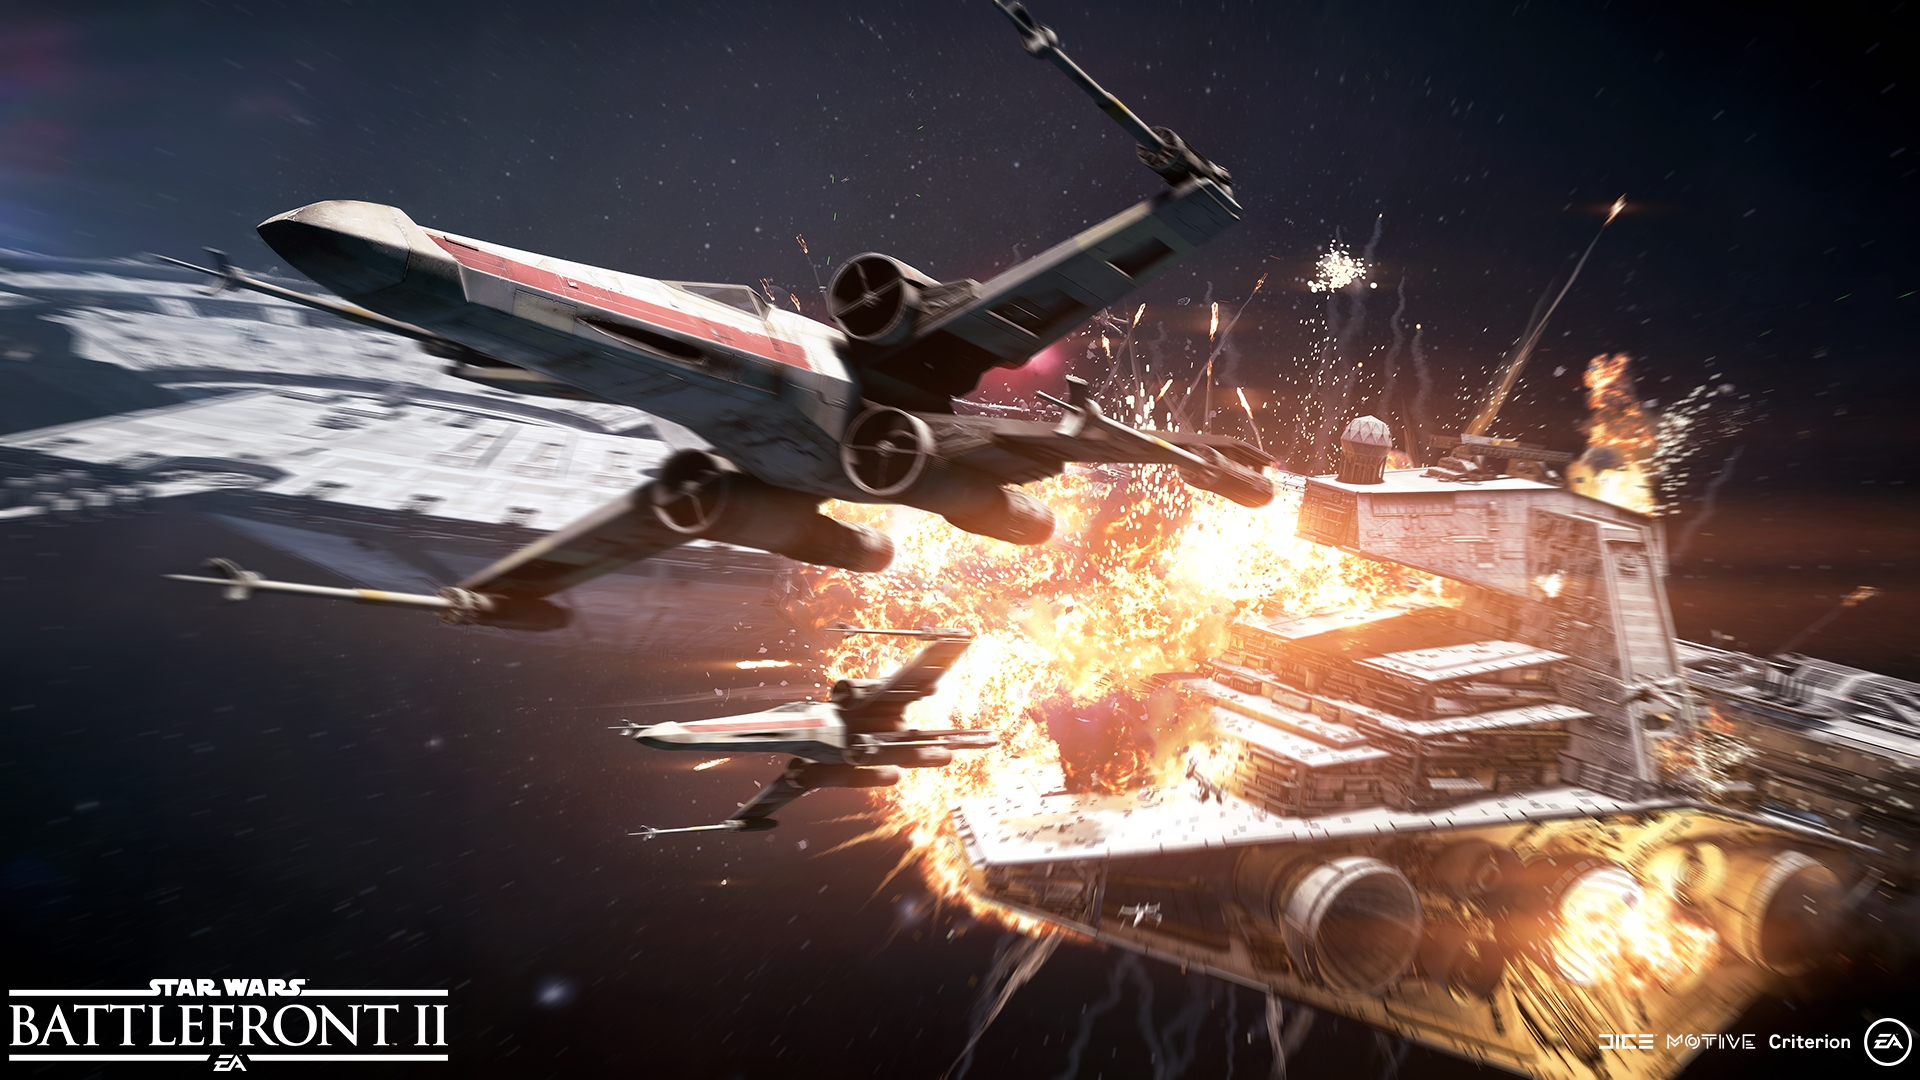 Star Wars: Battlefront II - you won't have to Force yourself to enjoy this